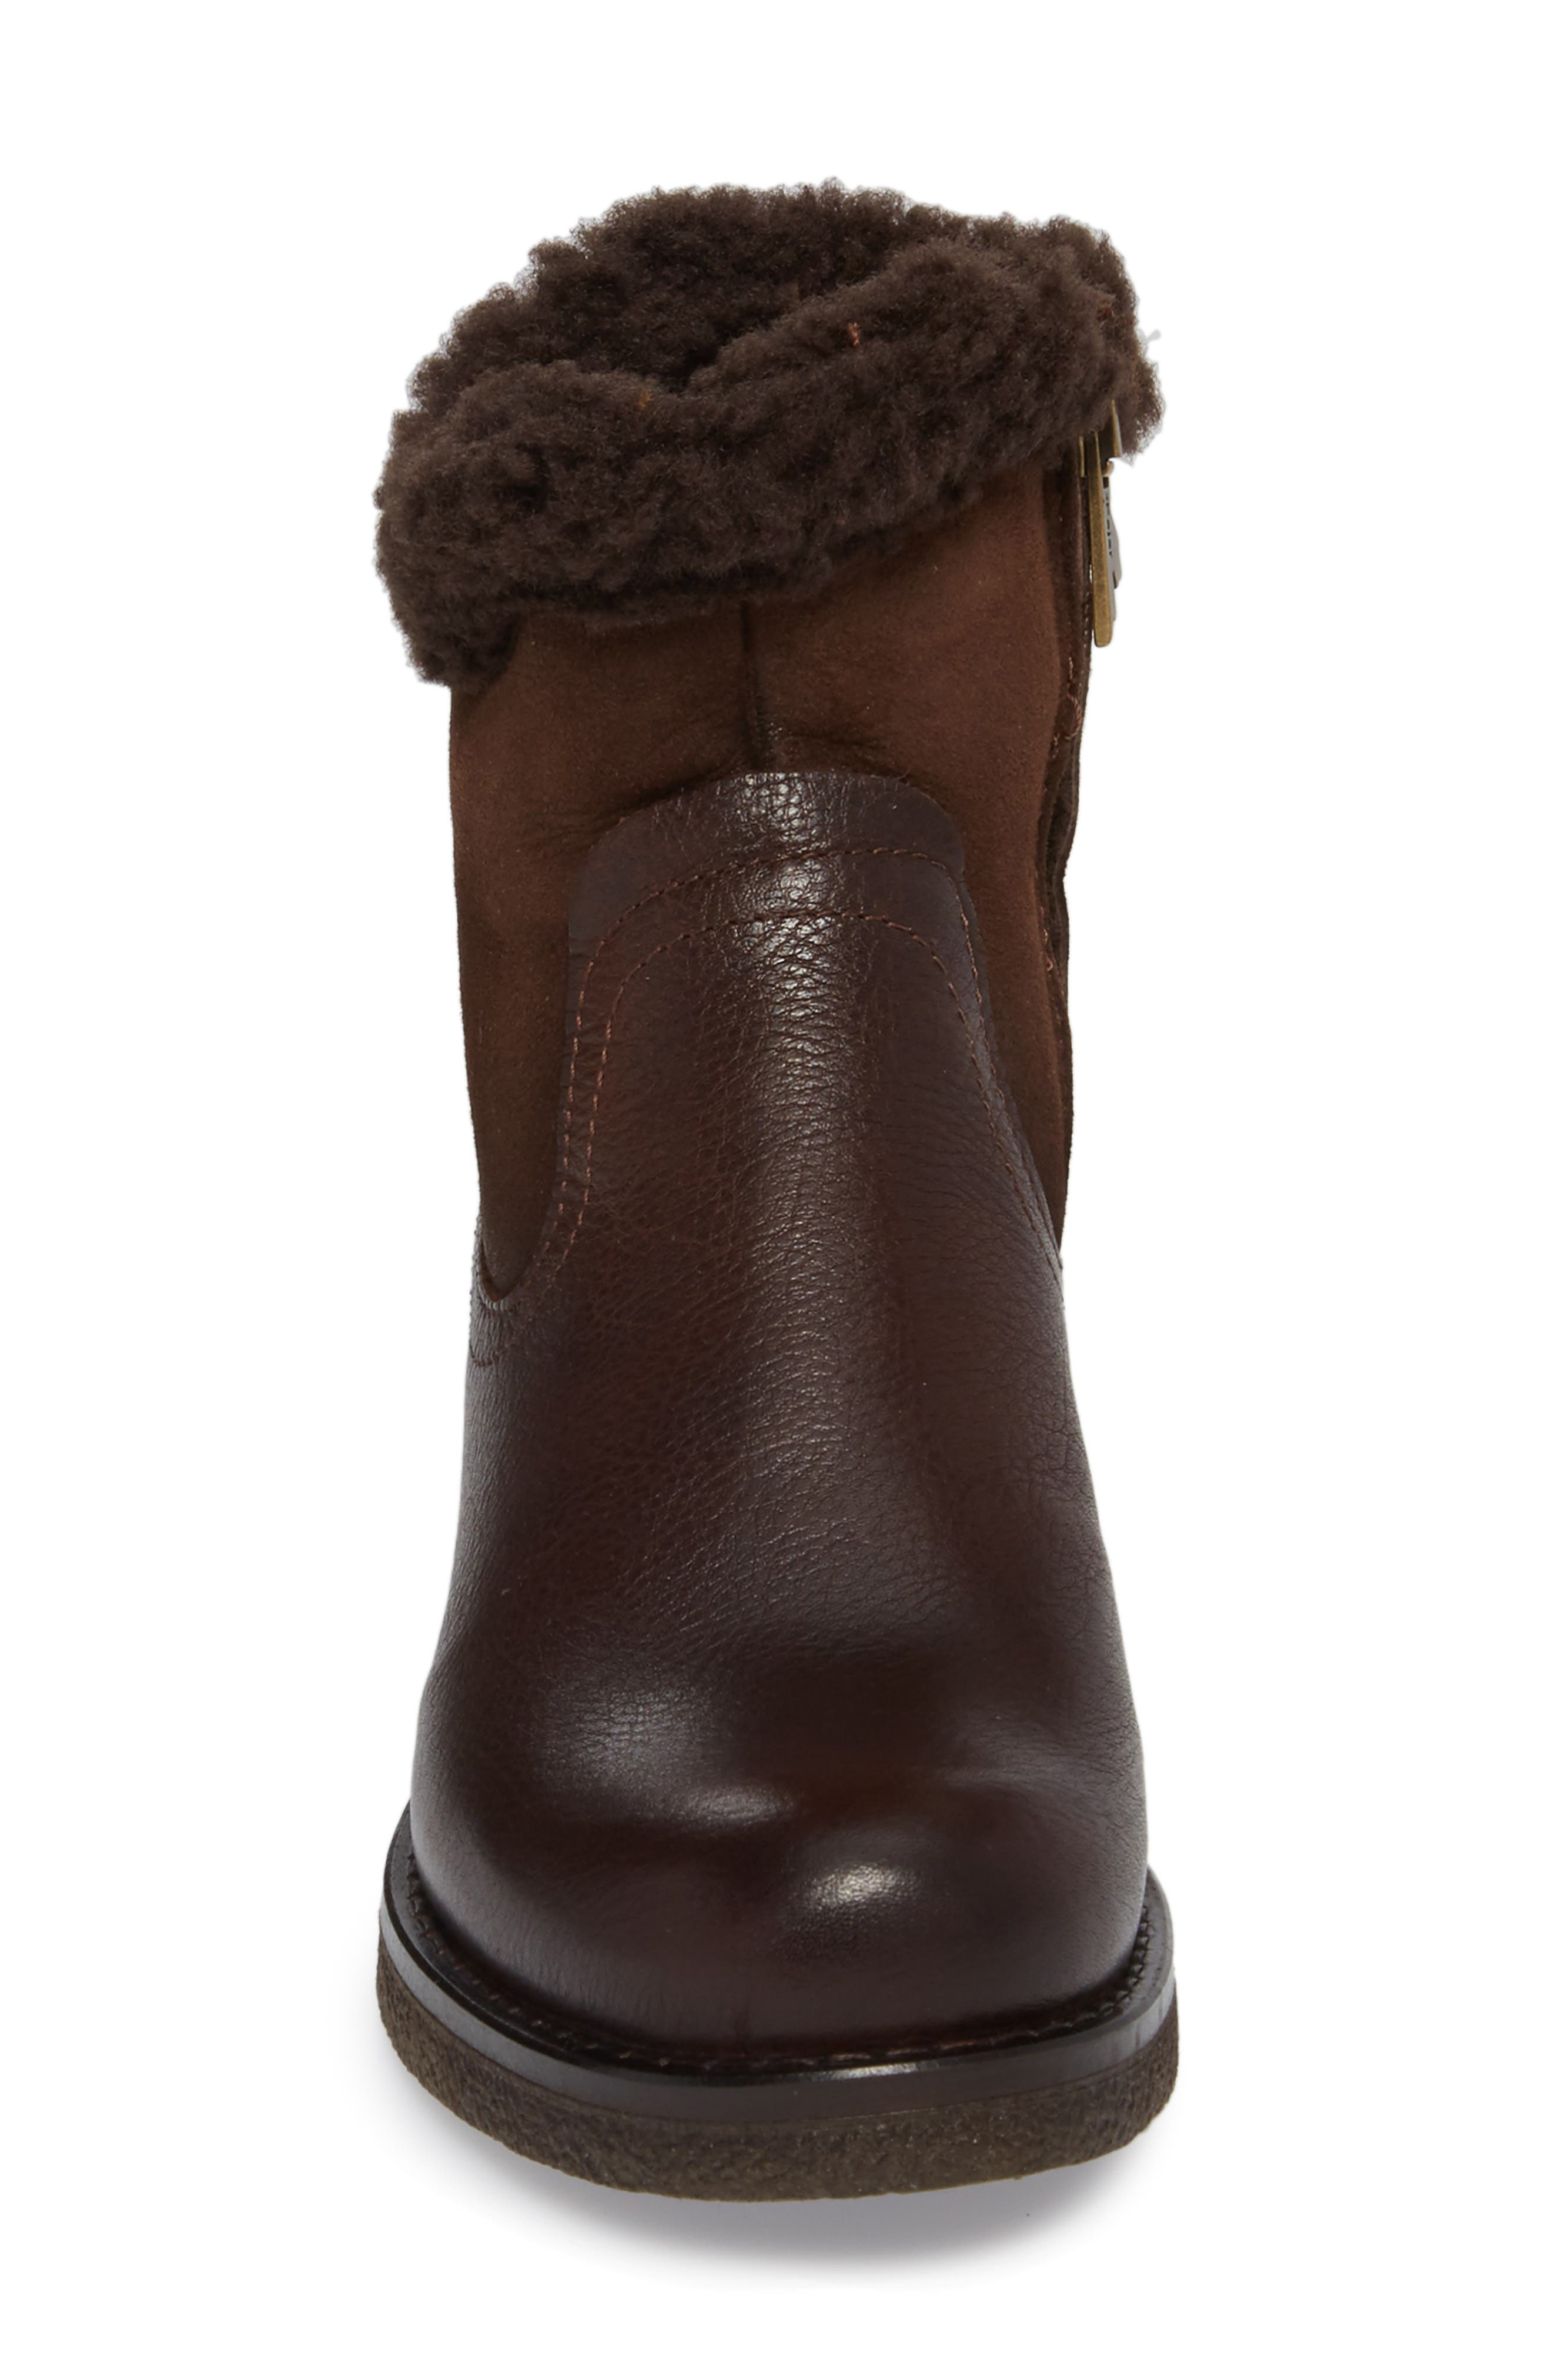 Odessa Waterproof Insulated Snow Boot,                             Alternate thumbnail 4, color,                             Brown Fur Leather